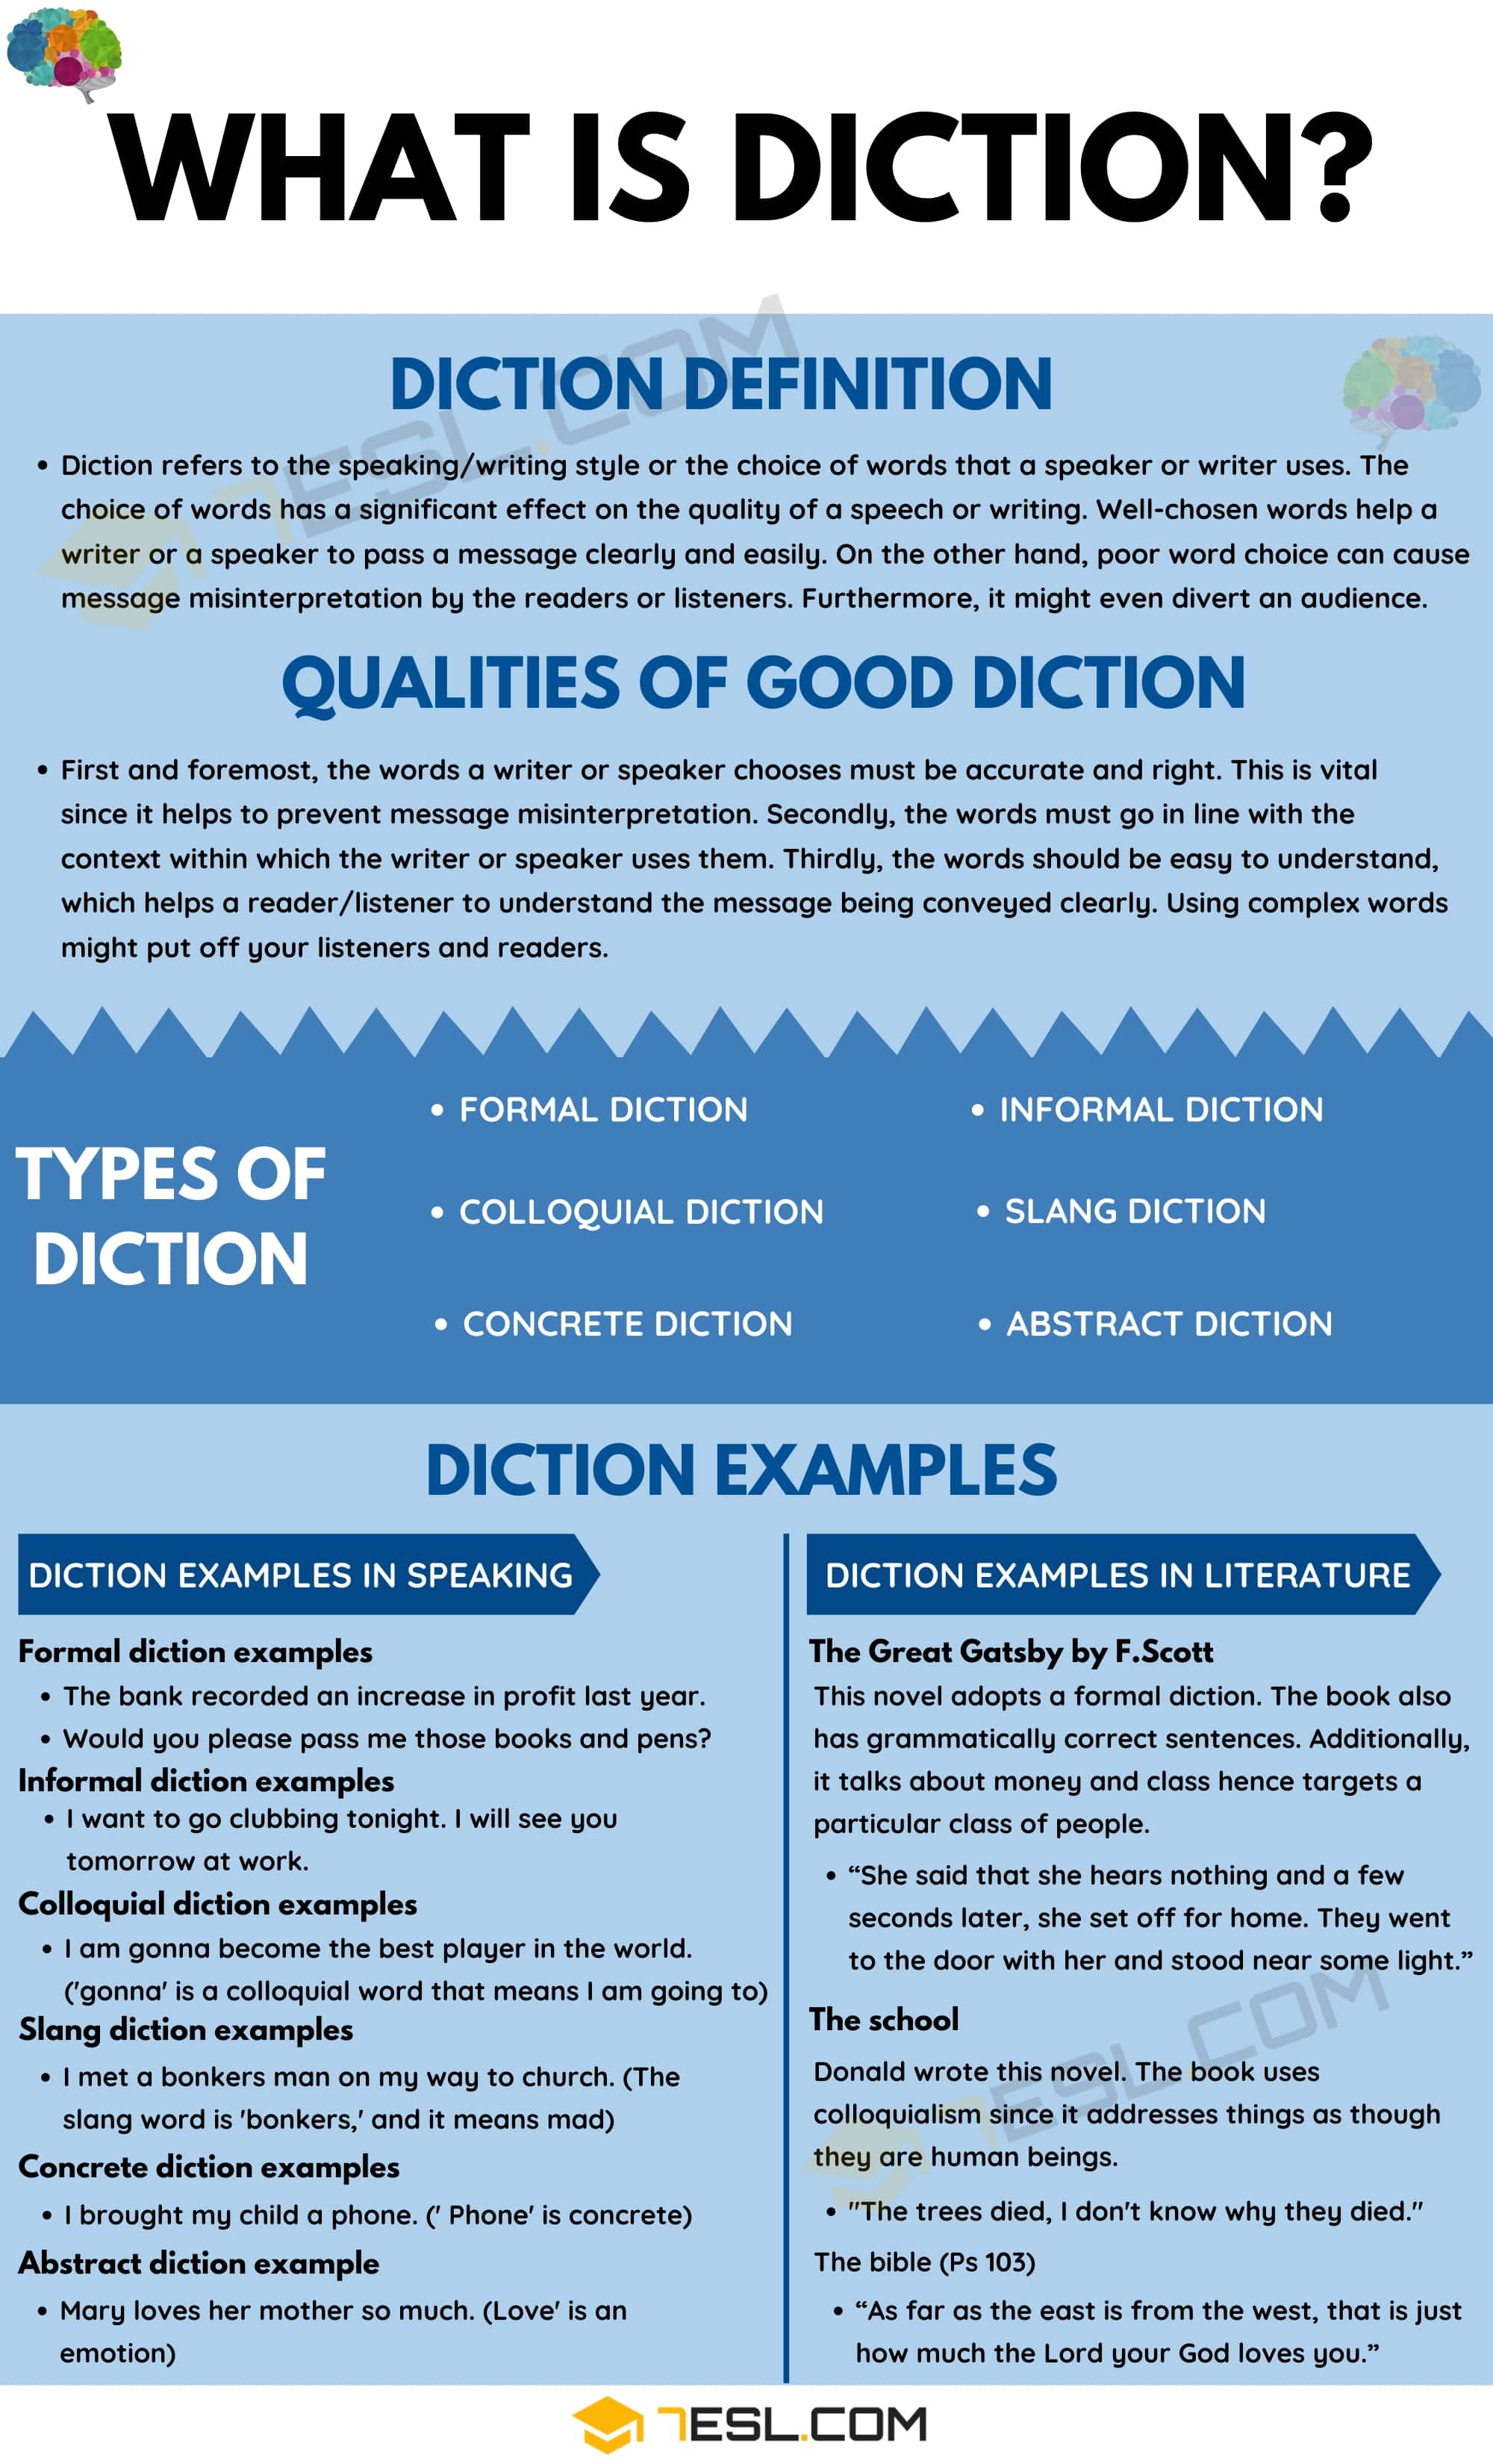 Diction: Definition, Types, and Examples of Diction in Speaking and Literature